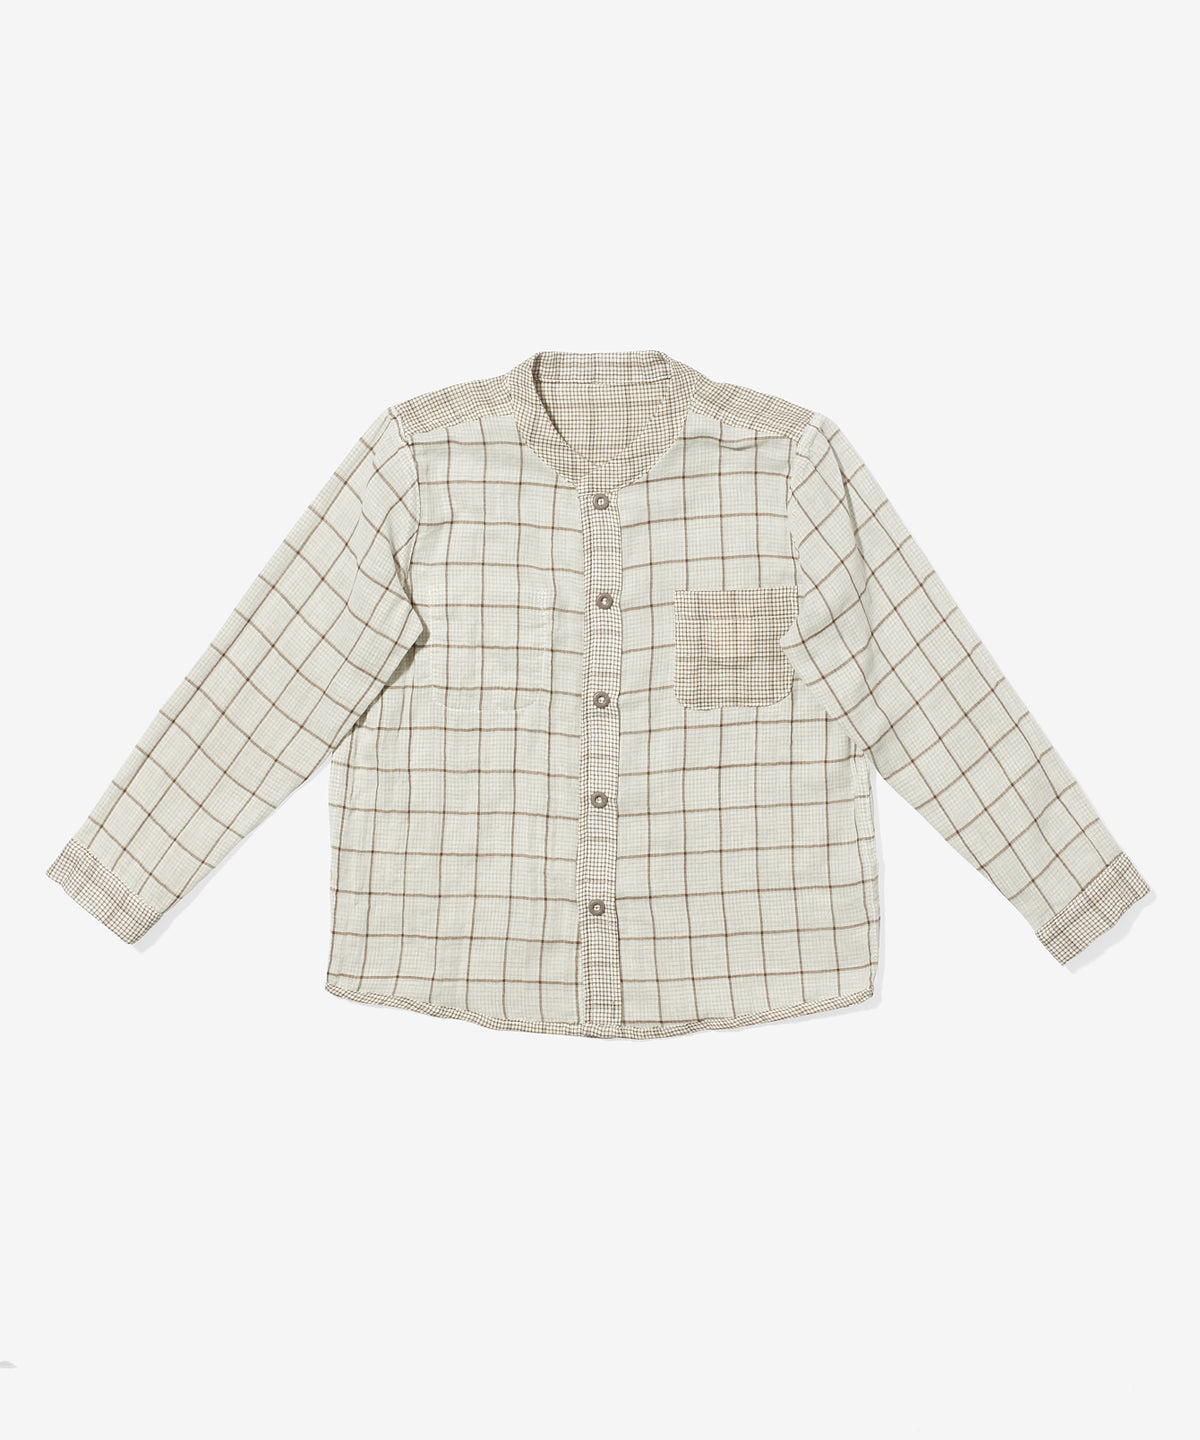 Jack Lee Shirt, Tan Plaid